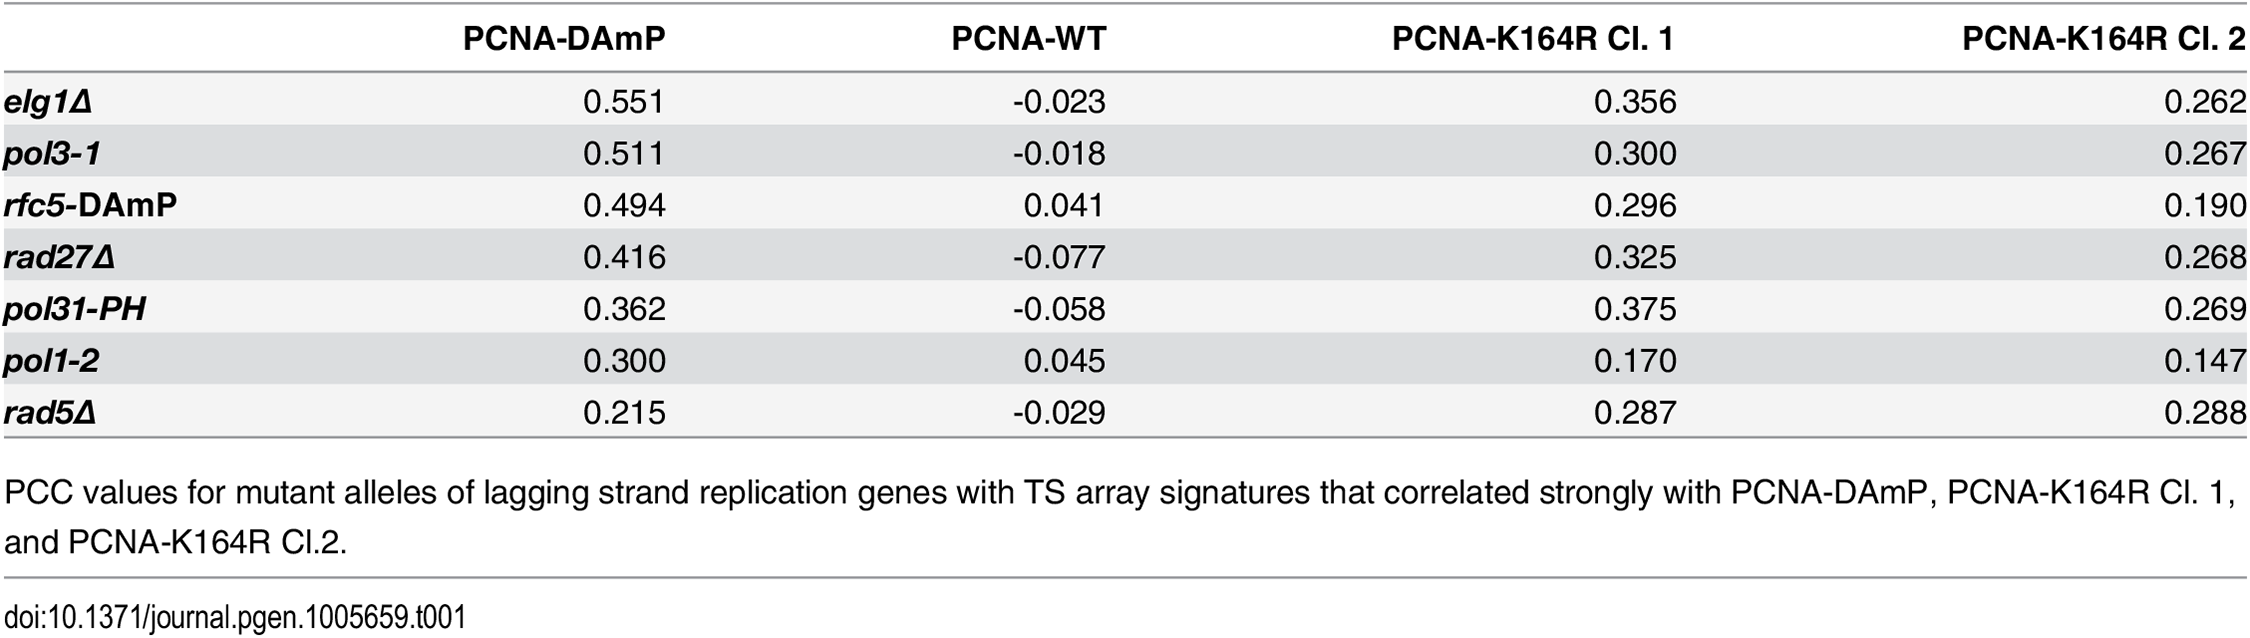 Lagging strand replication mutants that correlate strongly with PCNA-DAmP and PCNA-K164R.